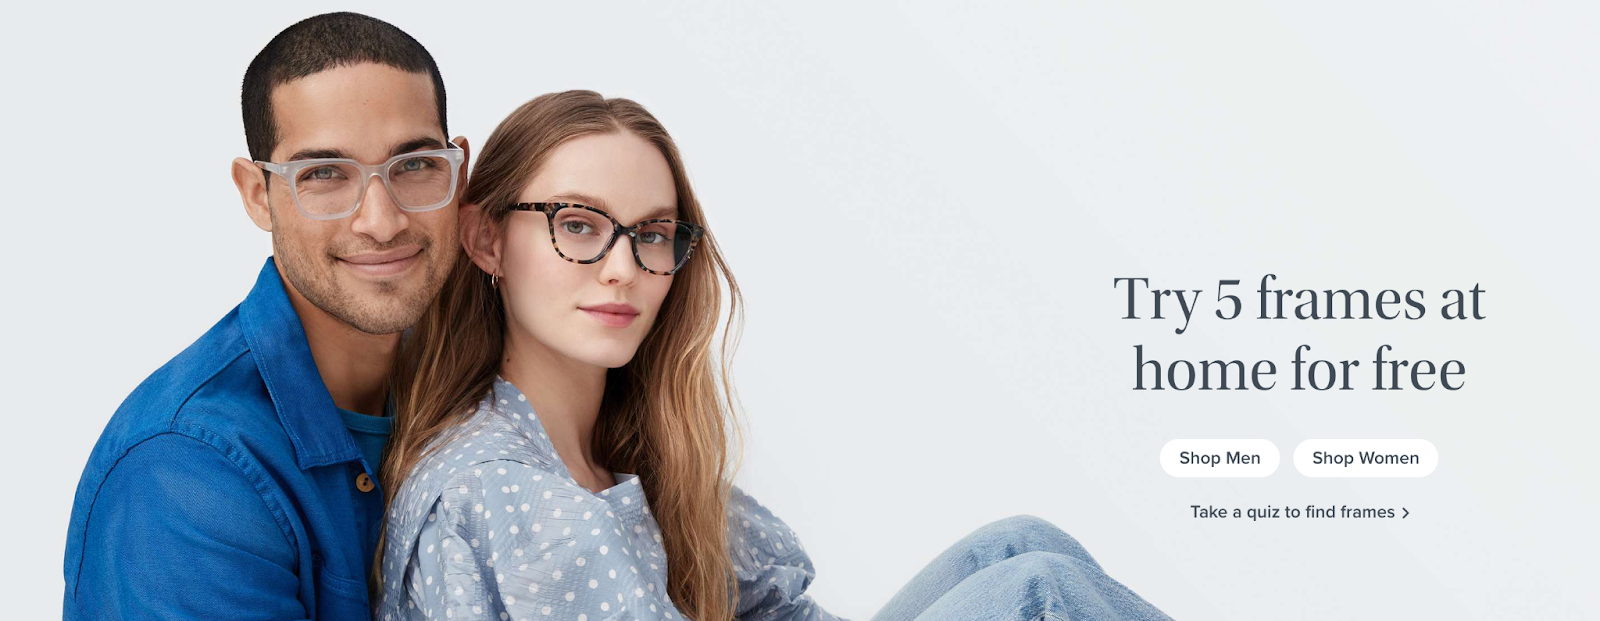 couple wearing glasses and try 5 frames for free from Warby Parker